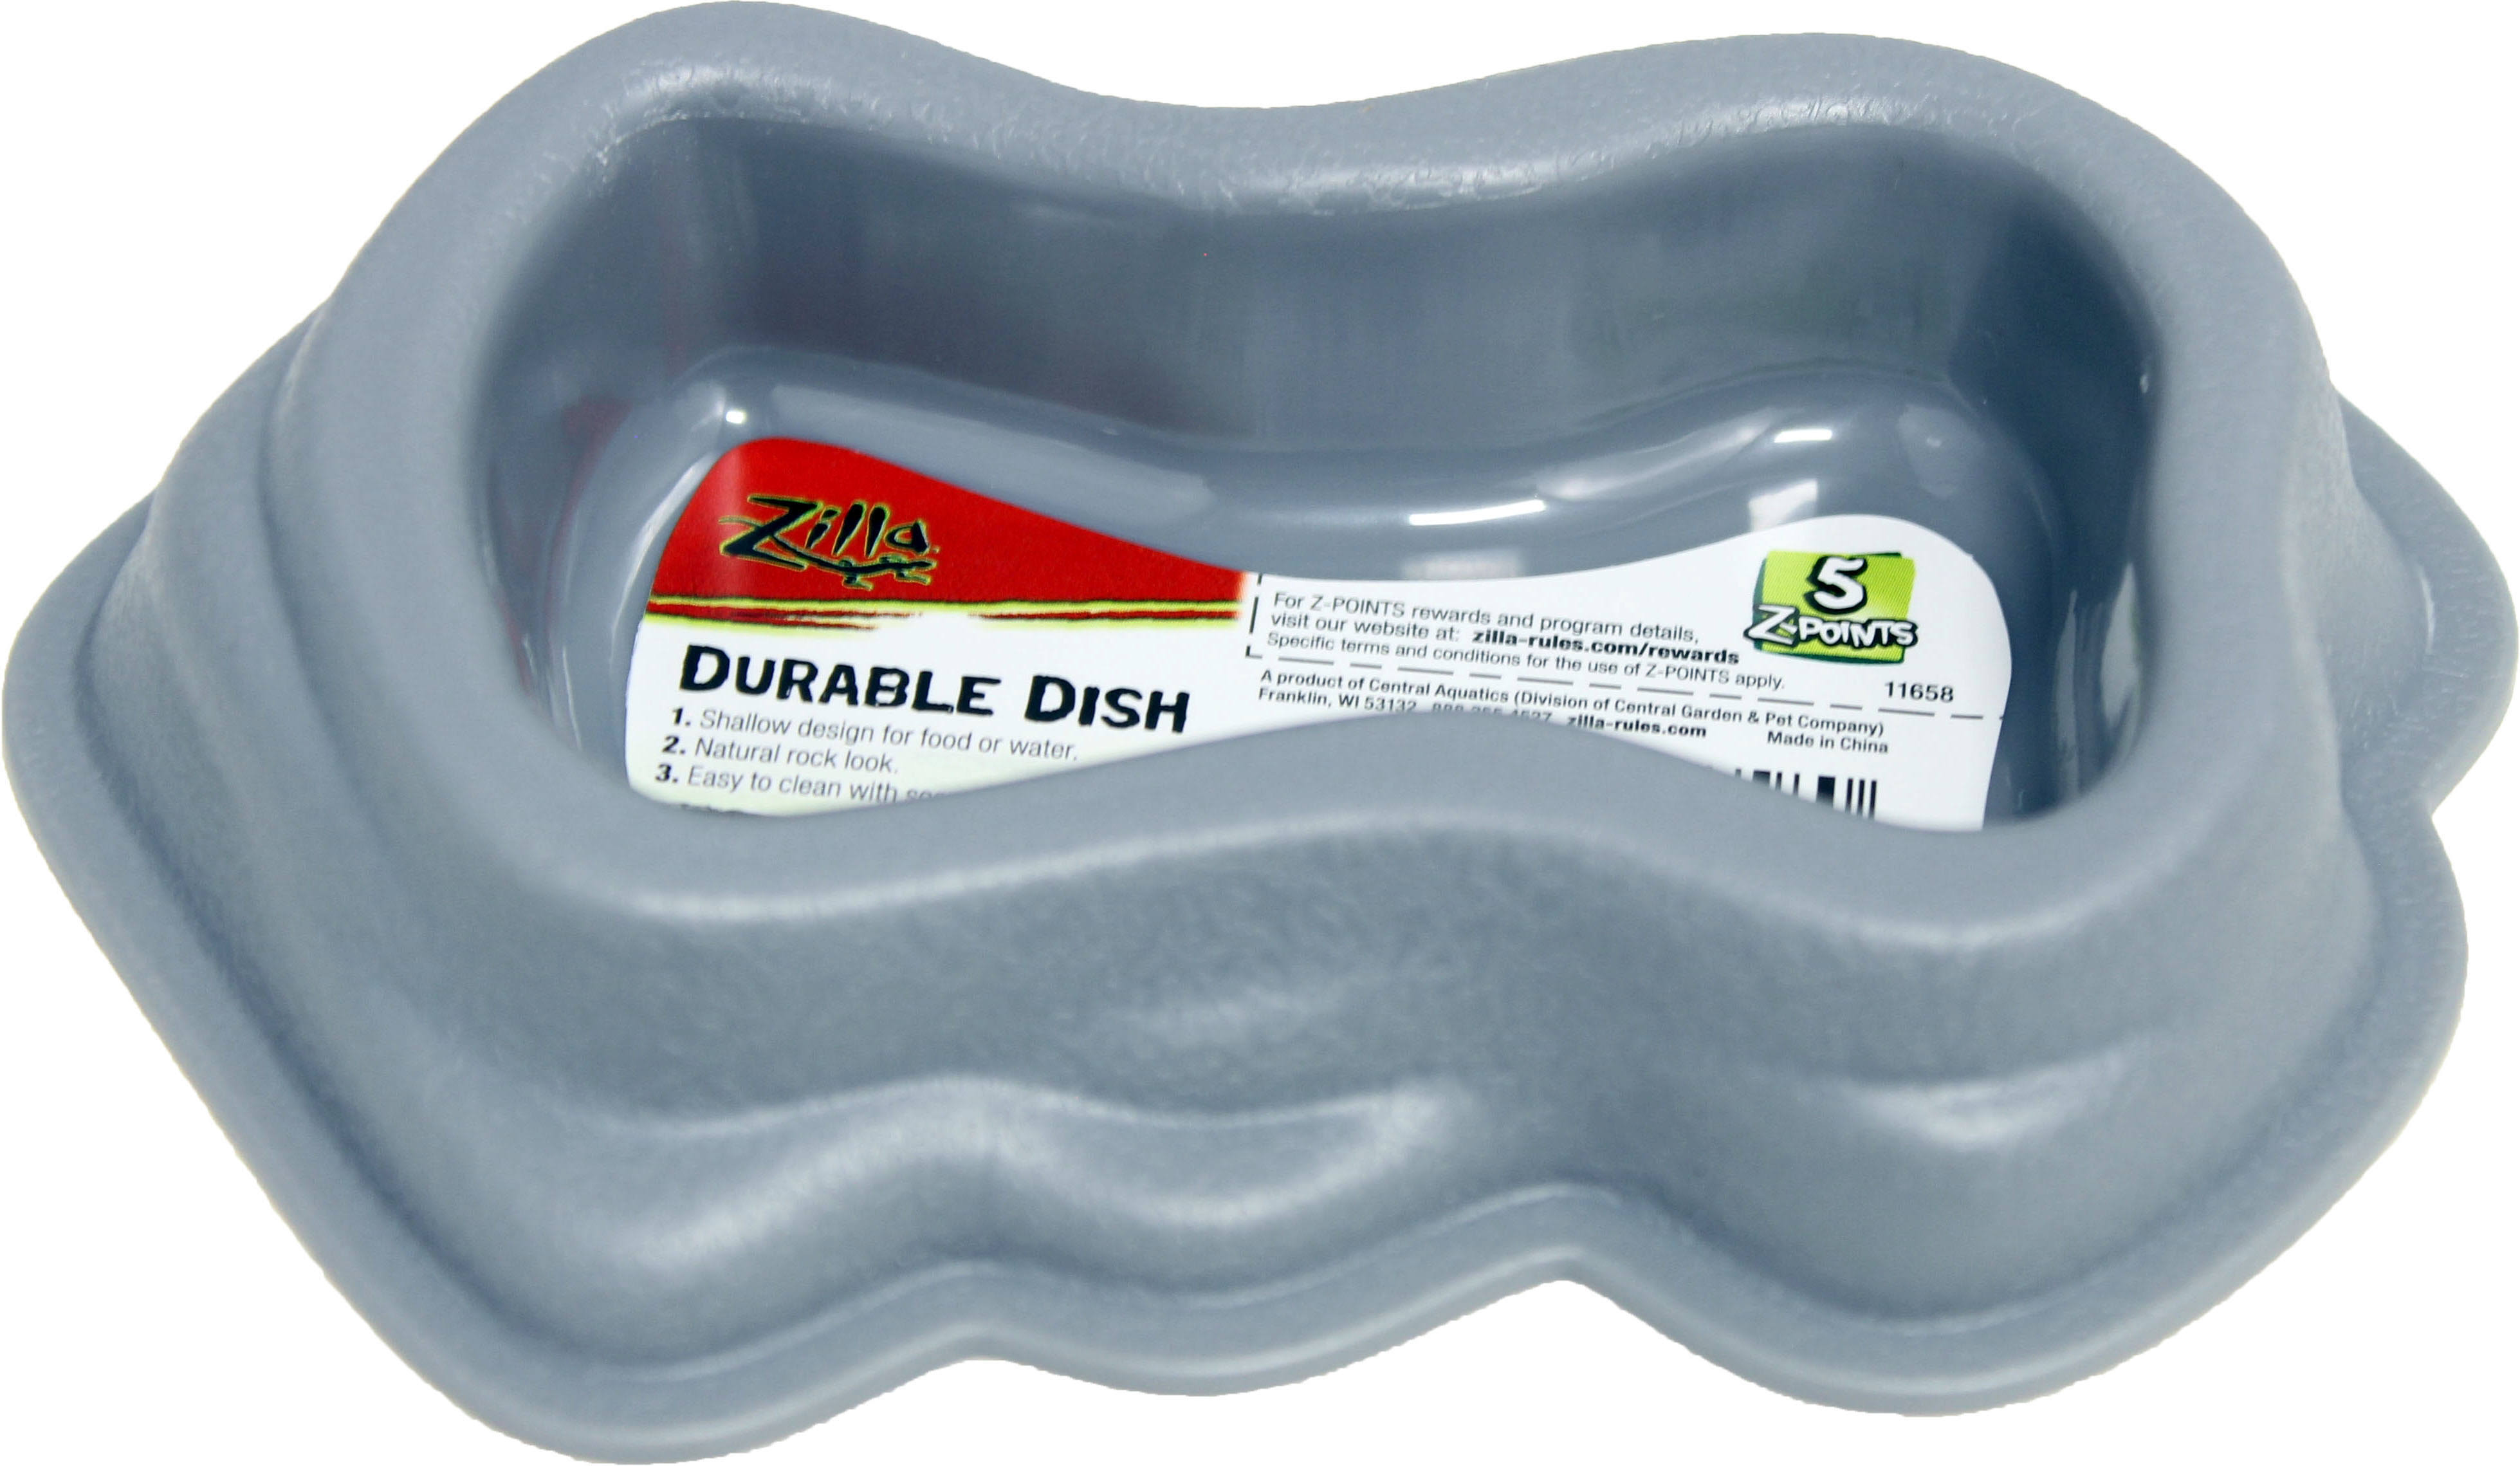 Zil Decor Durable Dish - Gray, Large